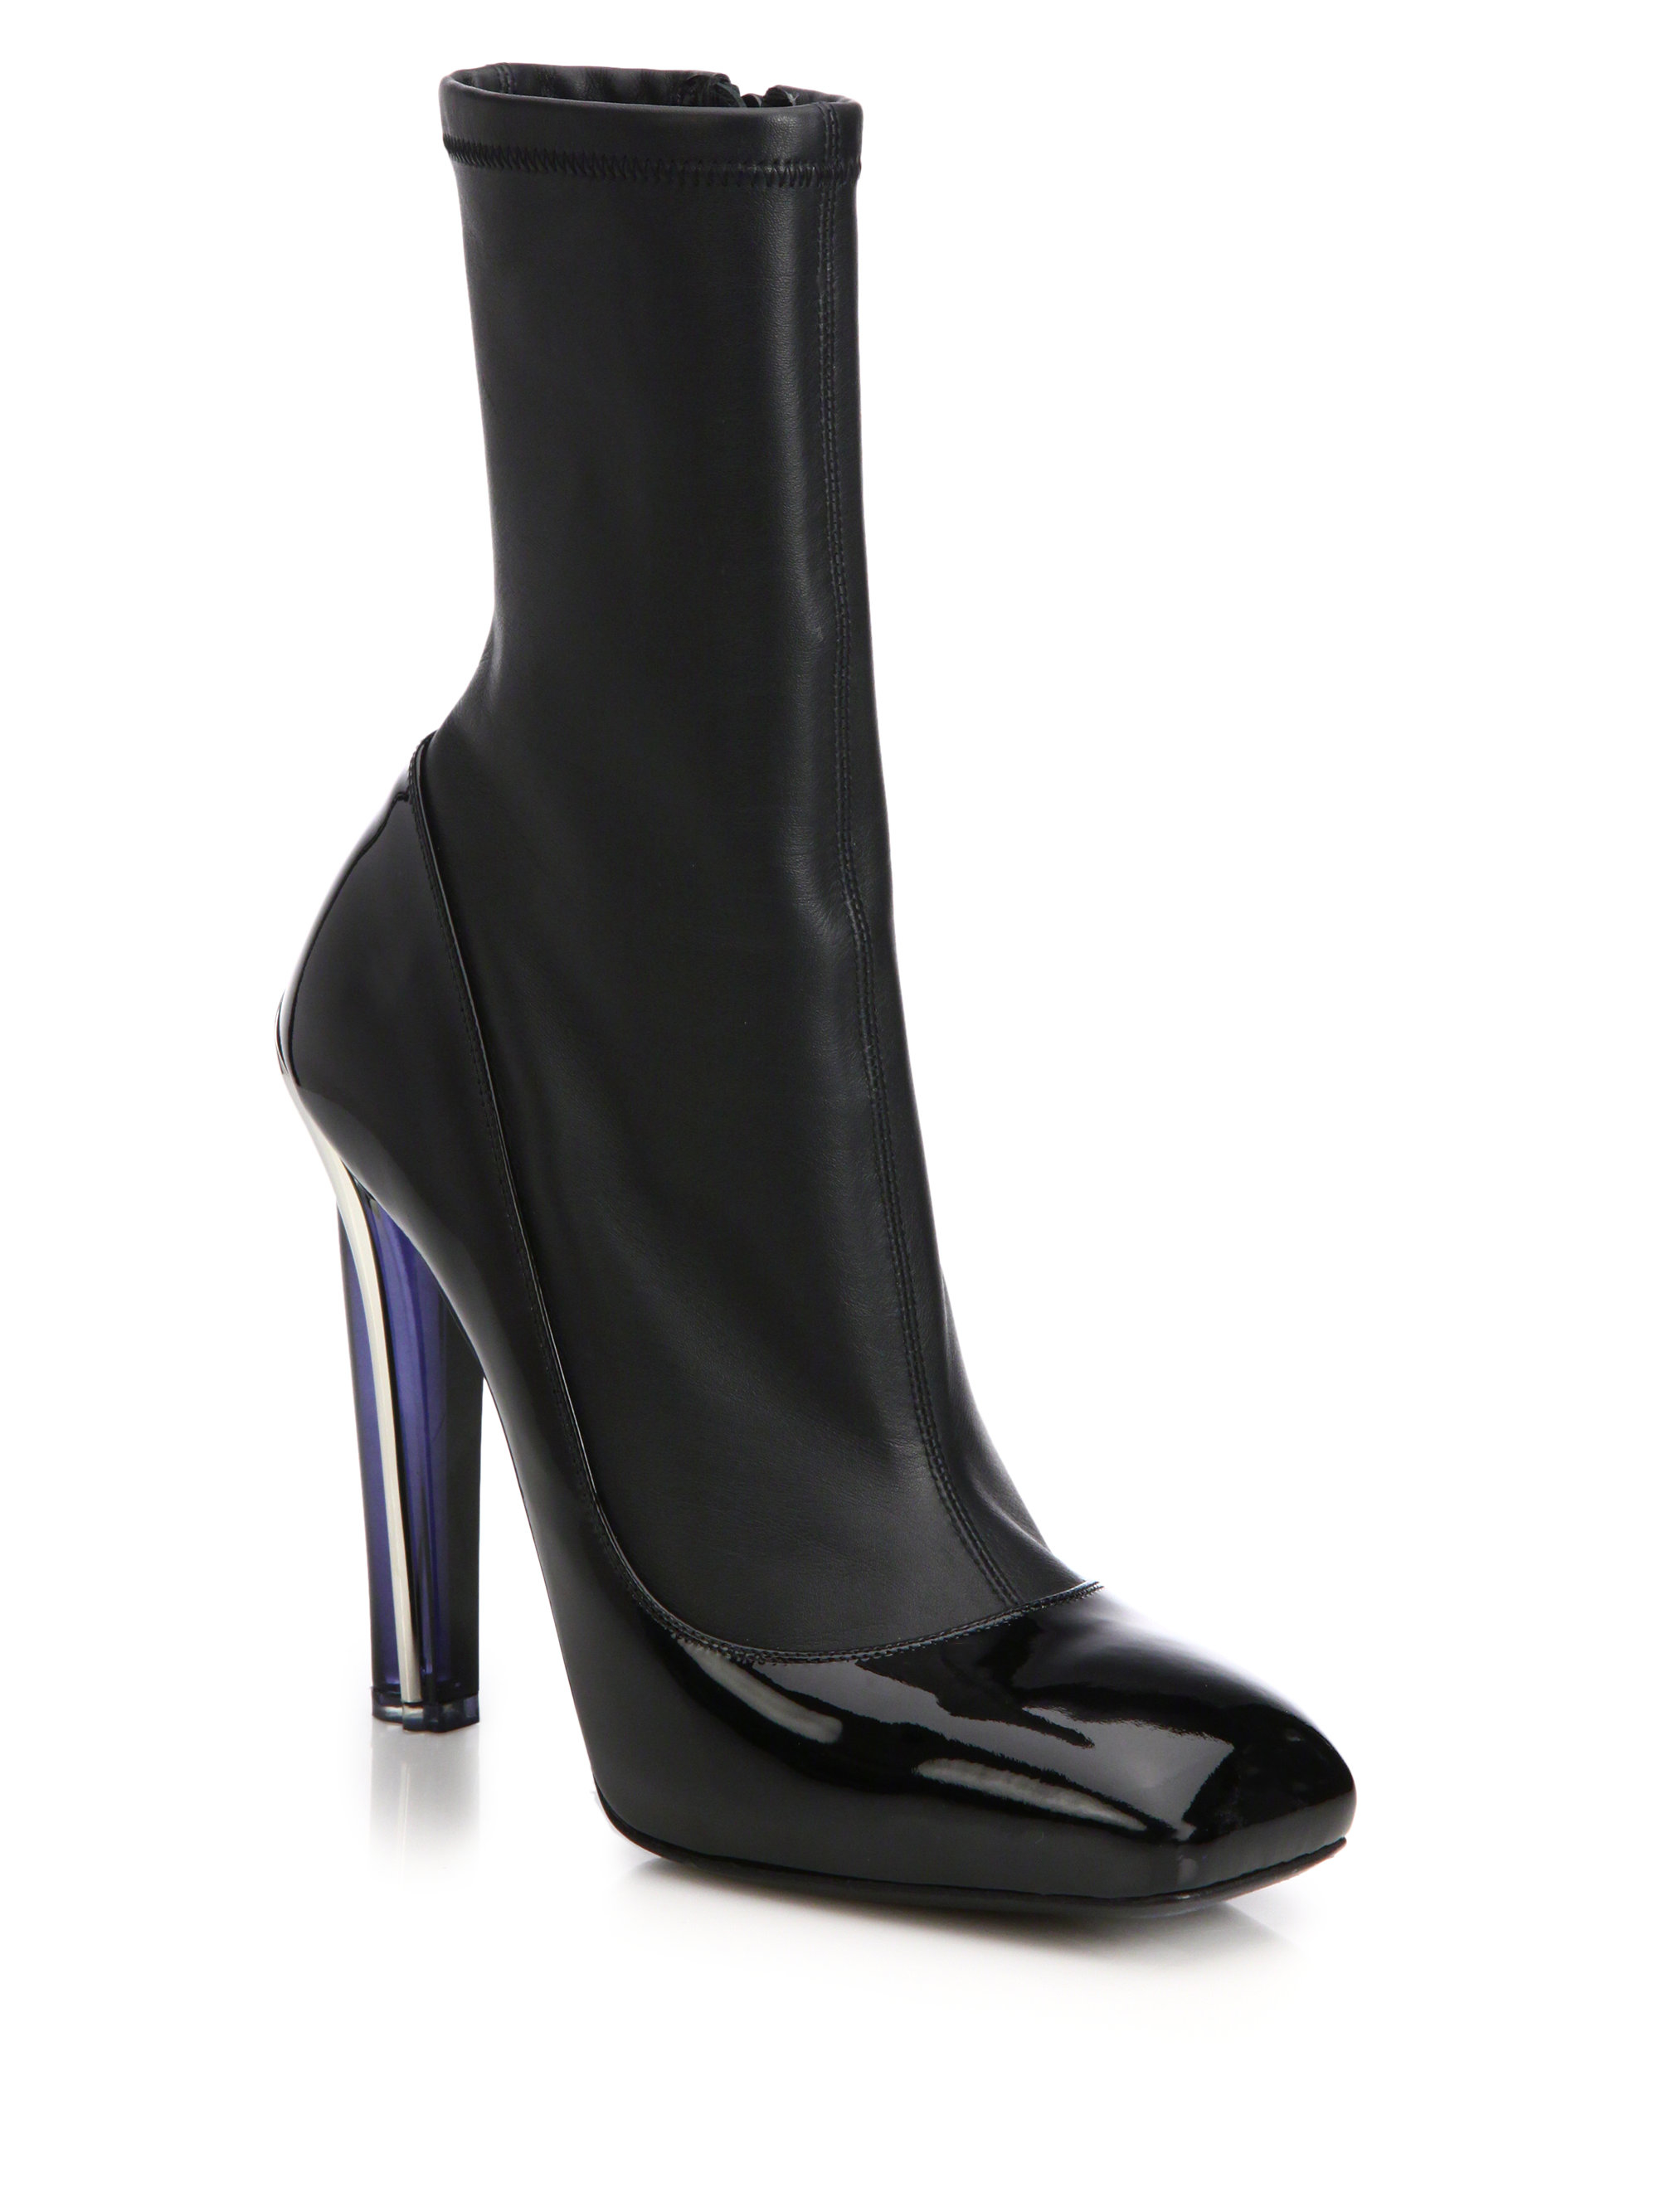 mcqueen stretch leather patent leather